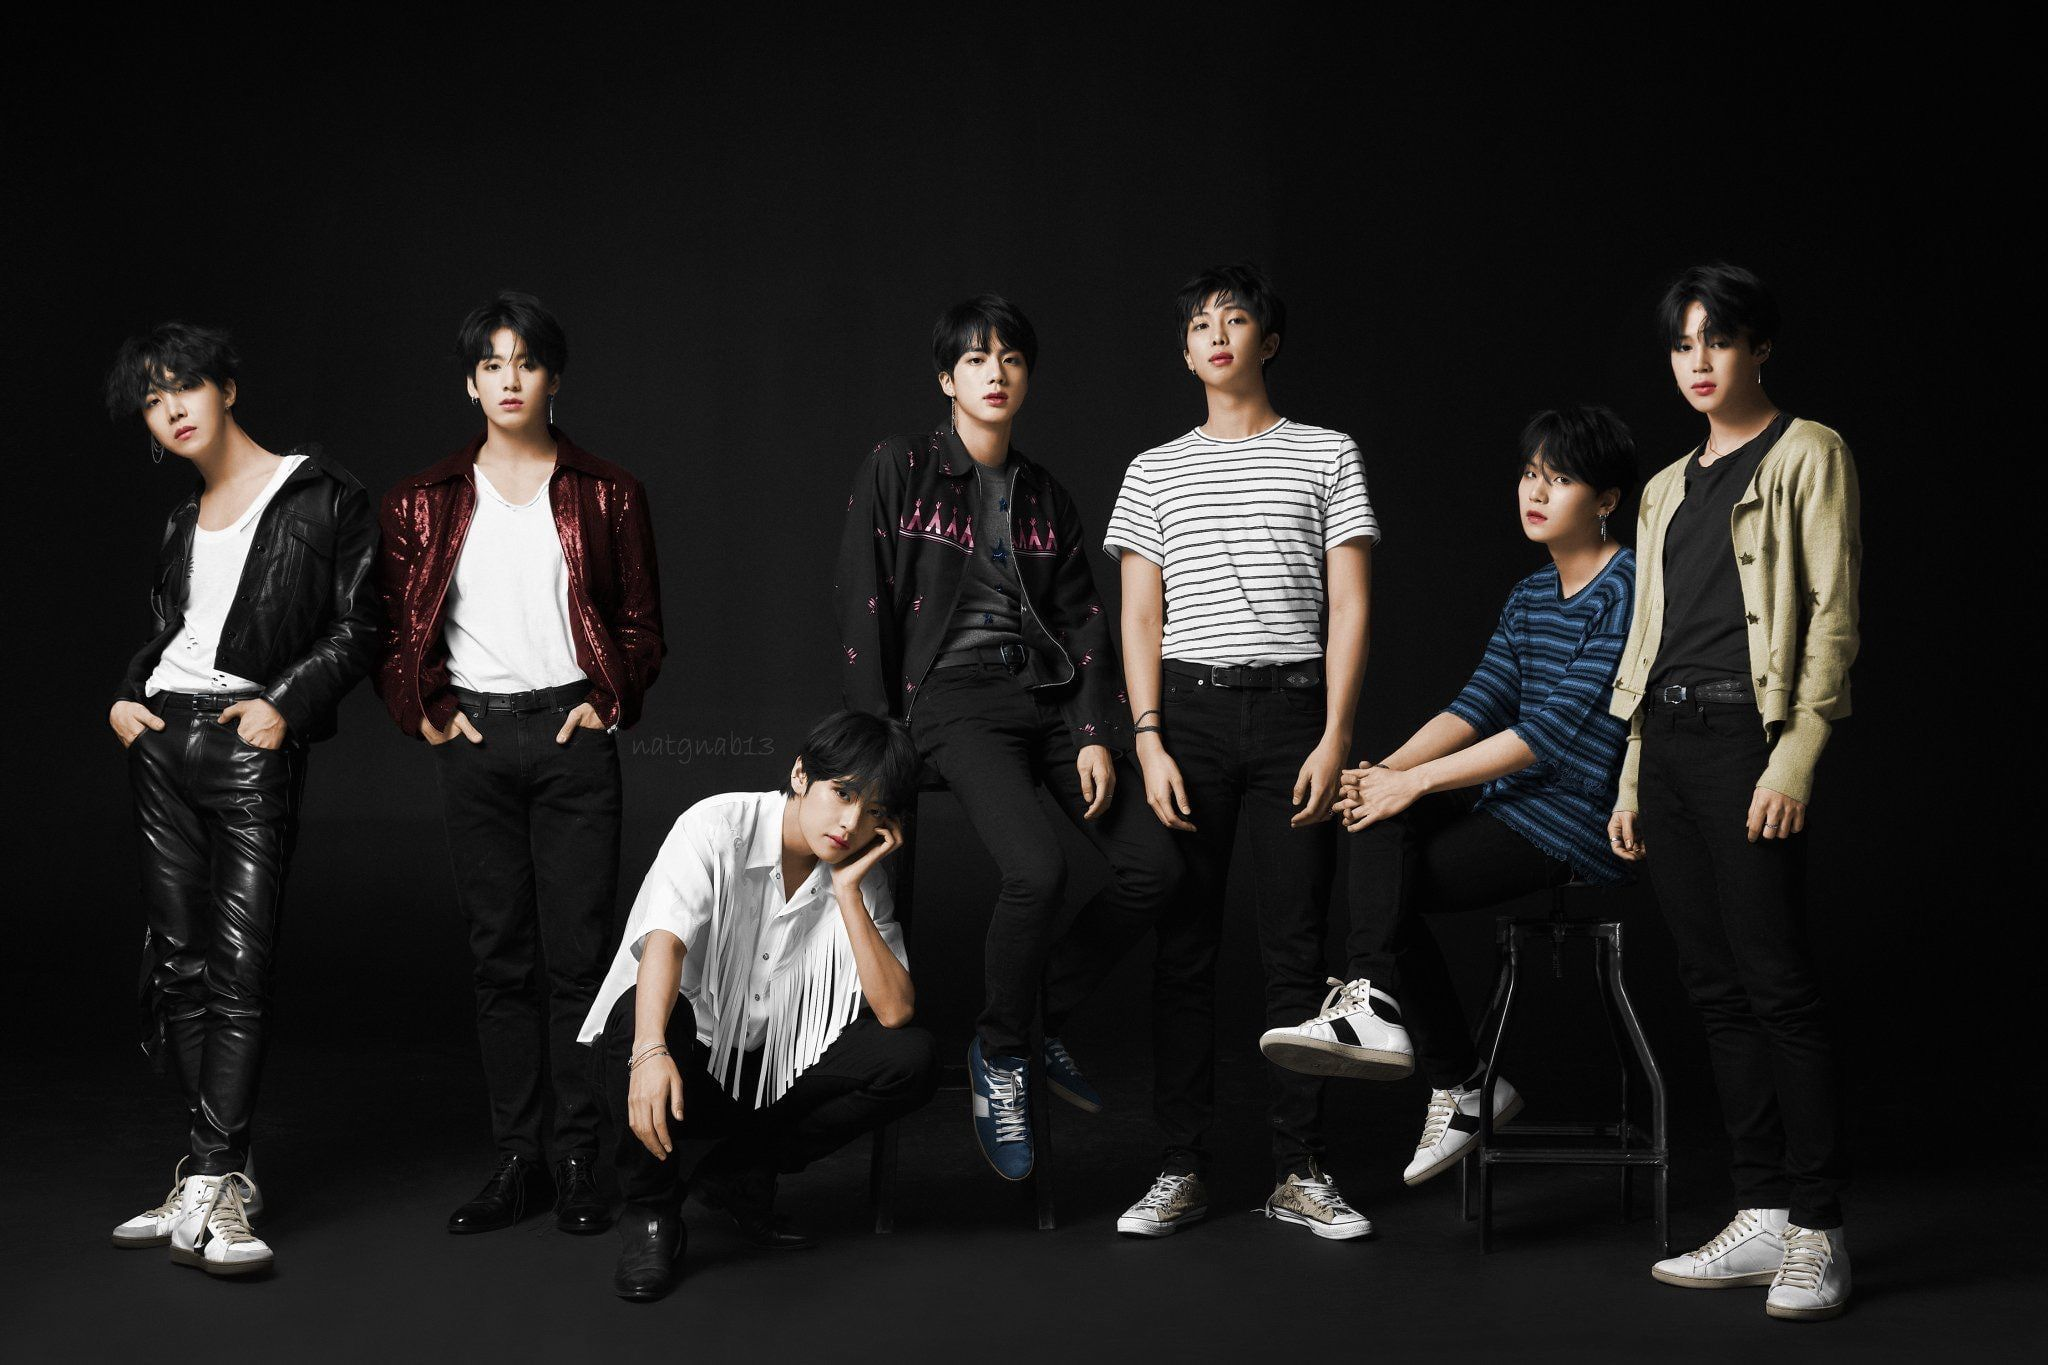 Bts Love Yourself Tear O Group 3167955 Hd Wallpaper Backgrounds Download